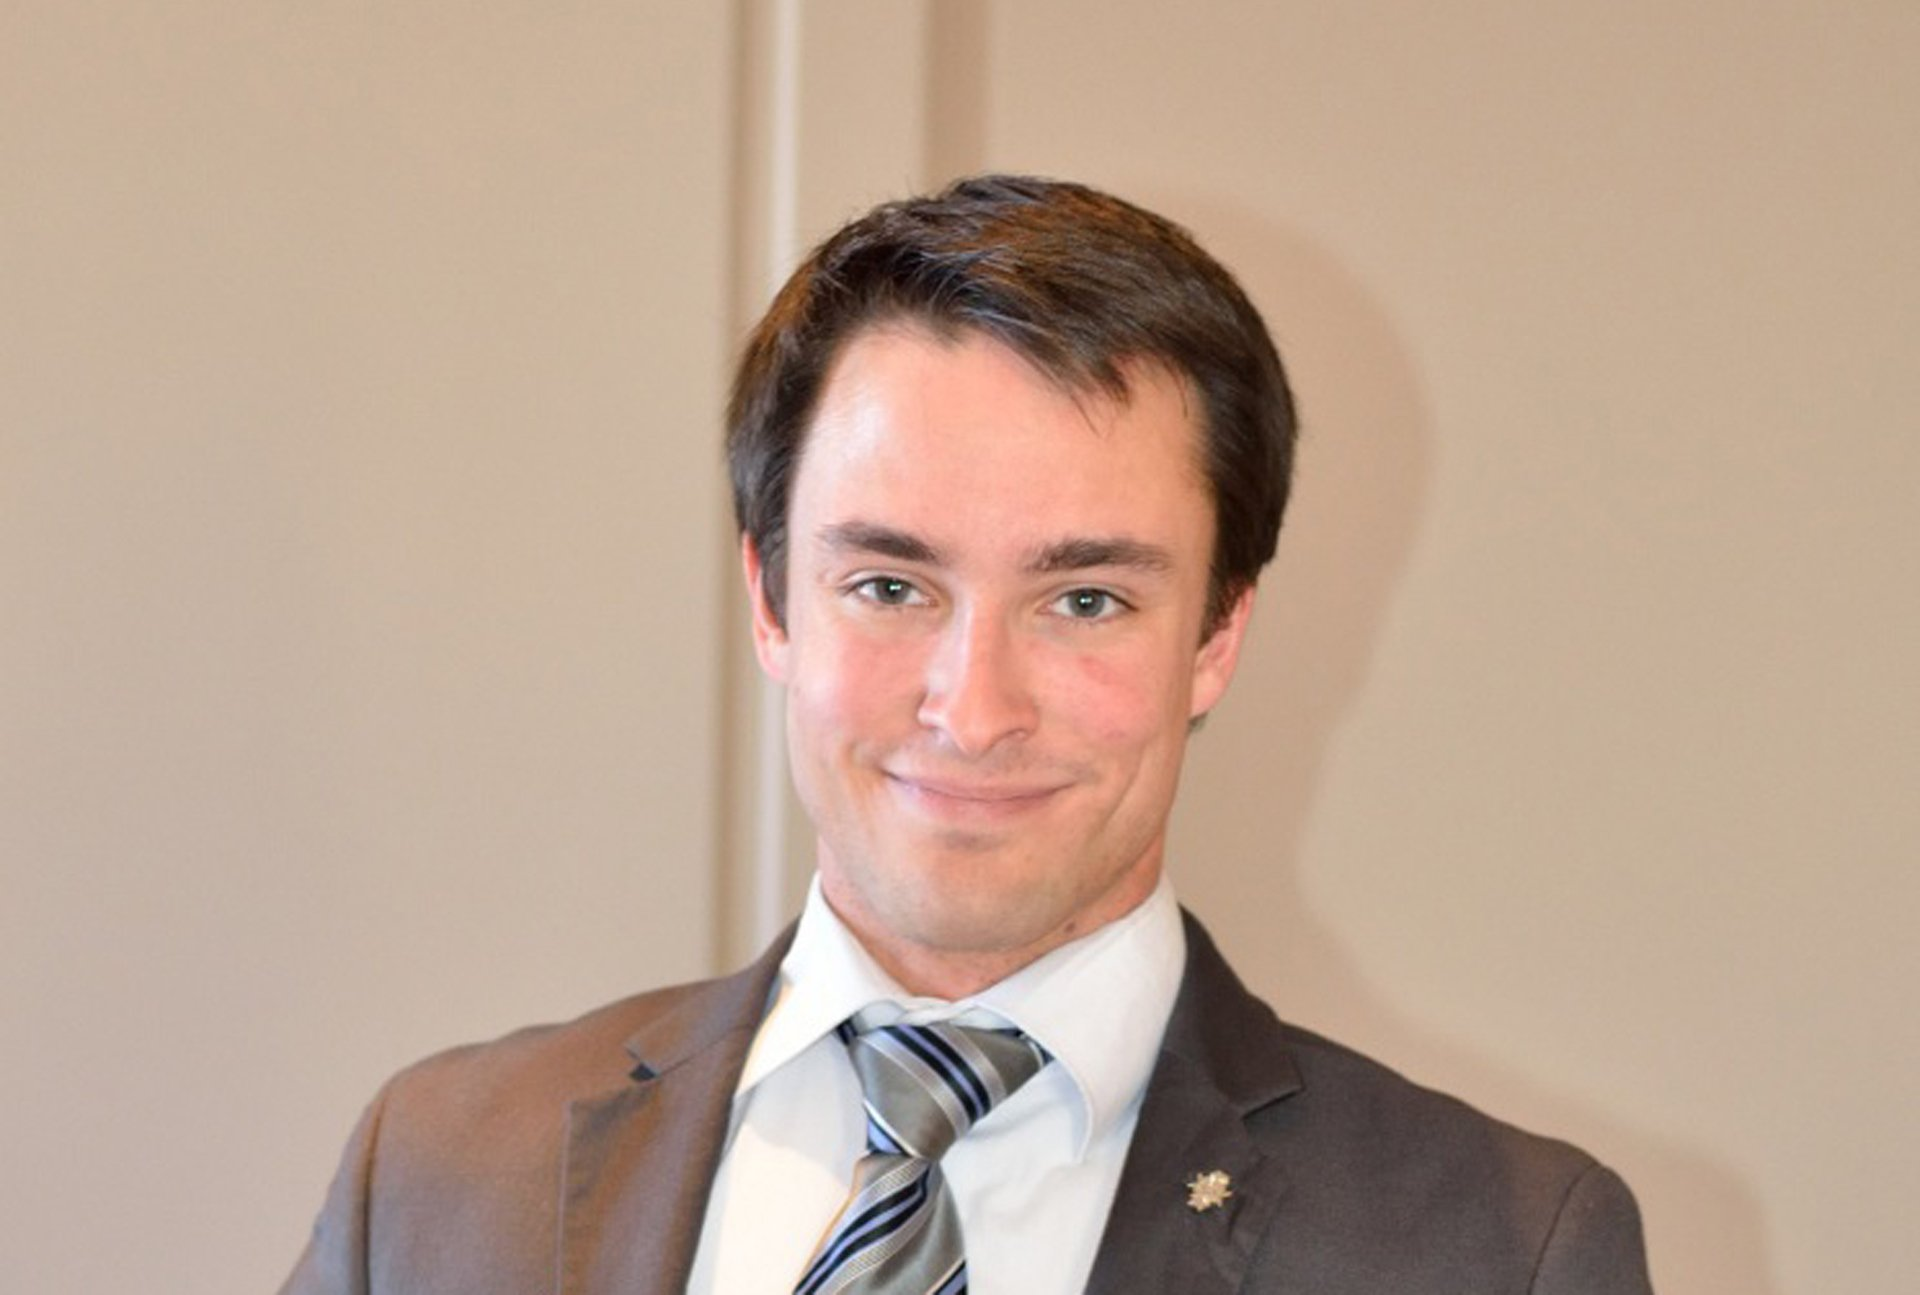 Guillaume Gondinet, Wine and Management Programme alumnus